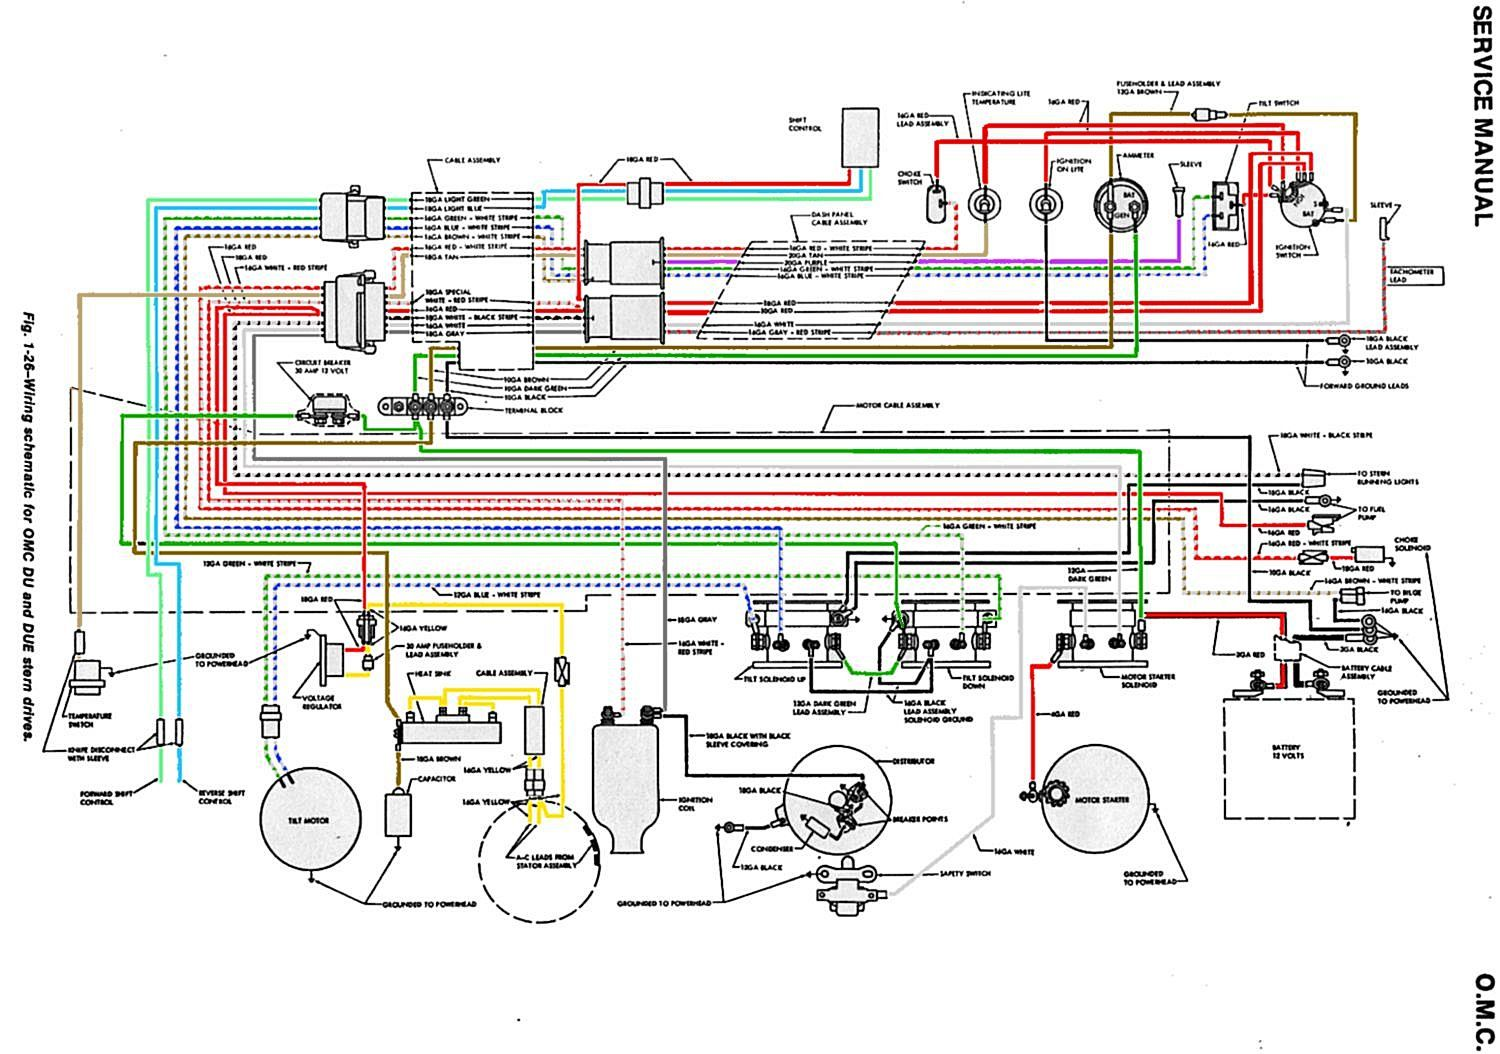 65 68_OMC_Wiring_Schematic omc wiring diagram basic boat wiring schematic \u2022 wiring diagrams omc push-to-choke ignition switch wiring diagram at suagrazia.org